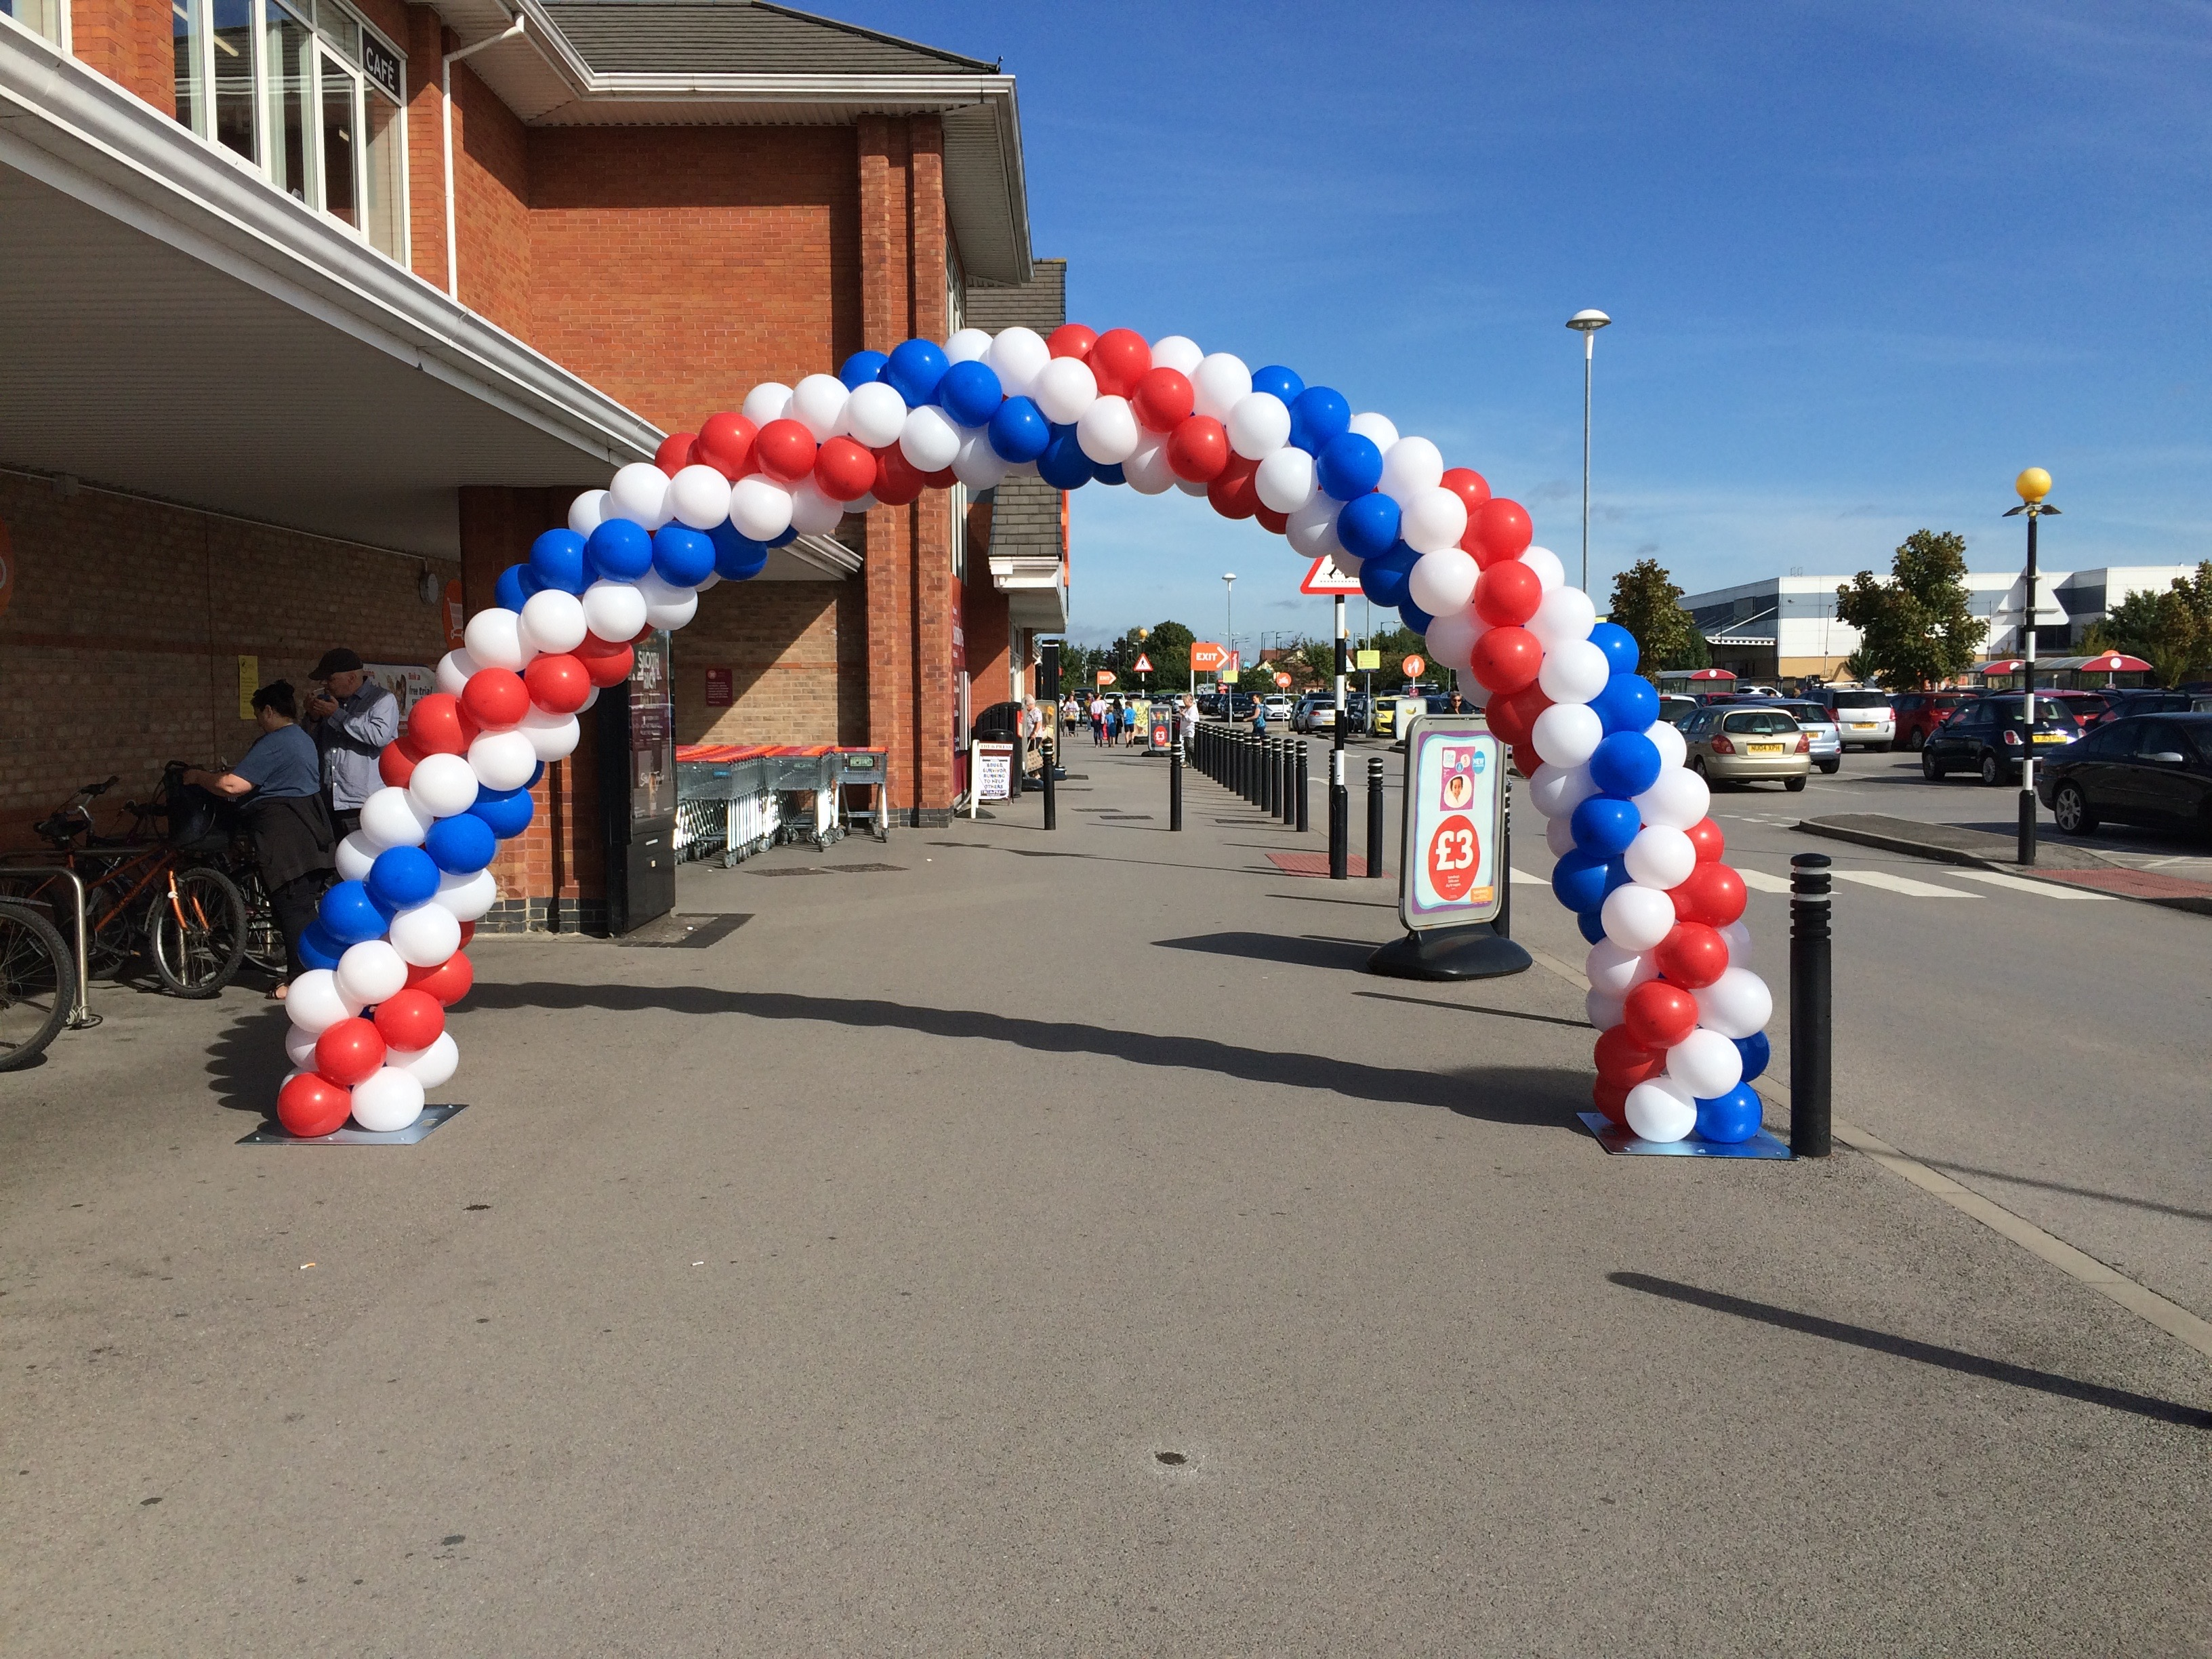 sainsbury's balloon arch aeropole red white blue